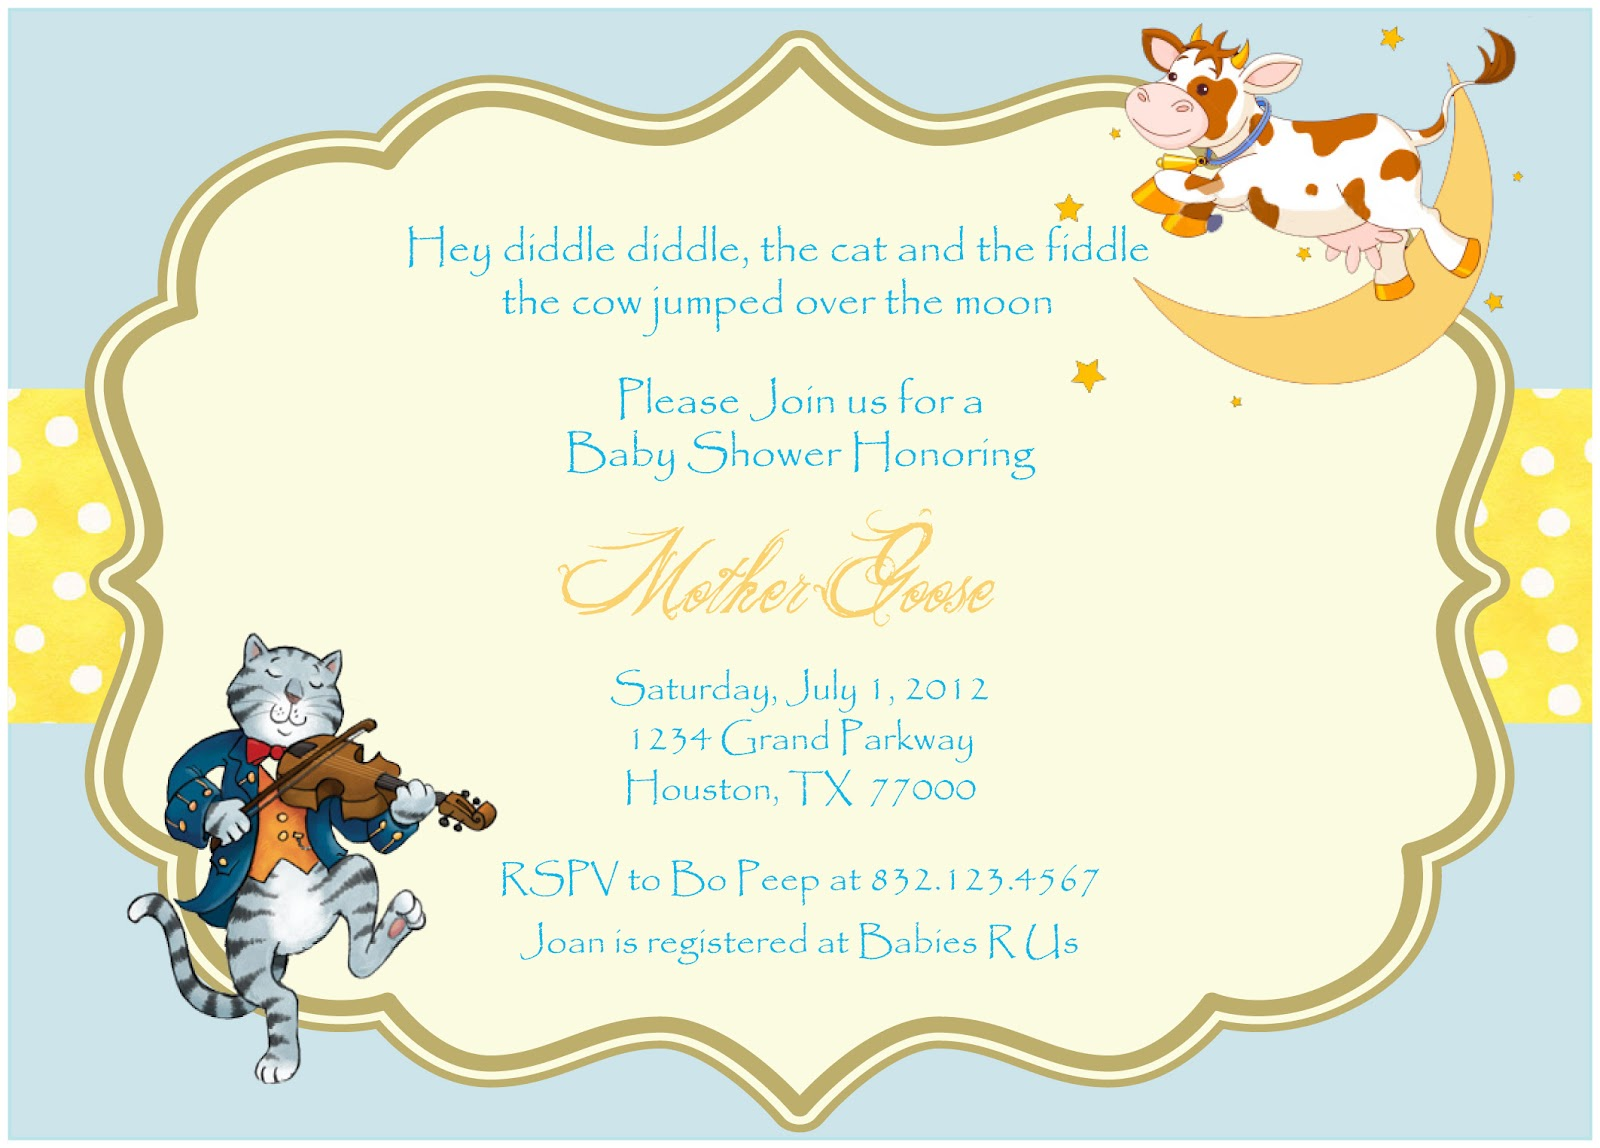 3 monkeys and more nursery rhyme baby shower invitations nursery rhyme baby shower invitations filmwisefo